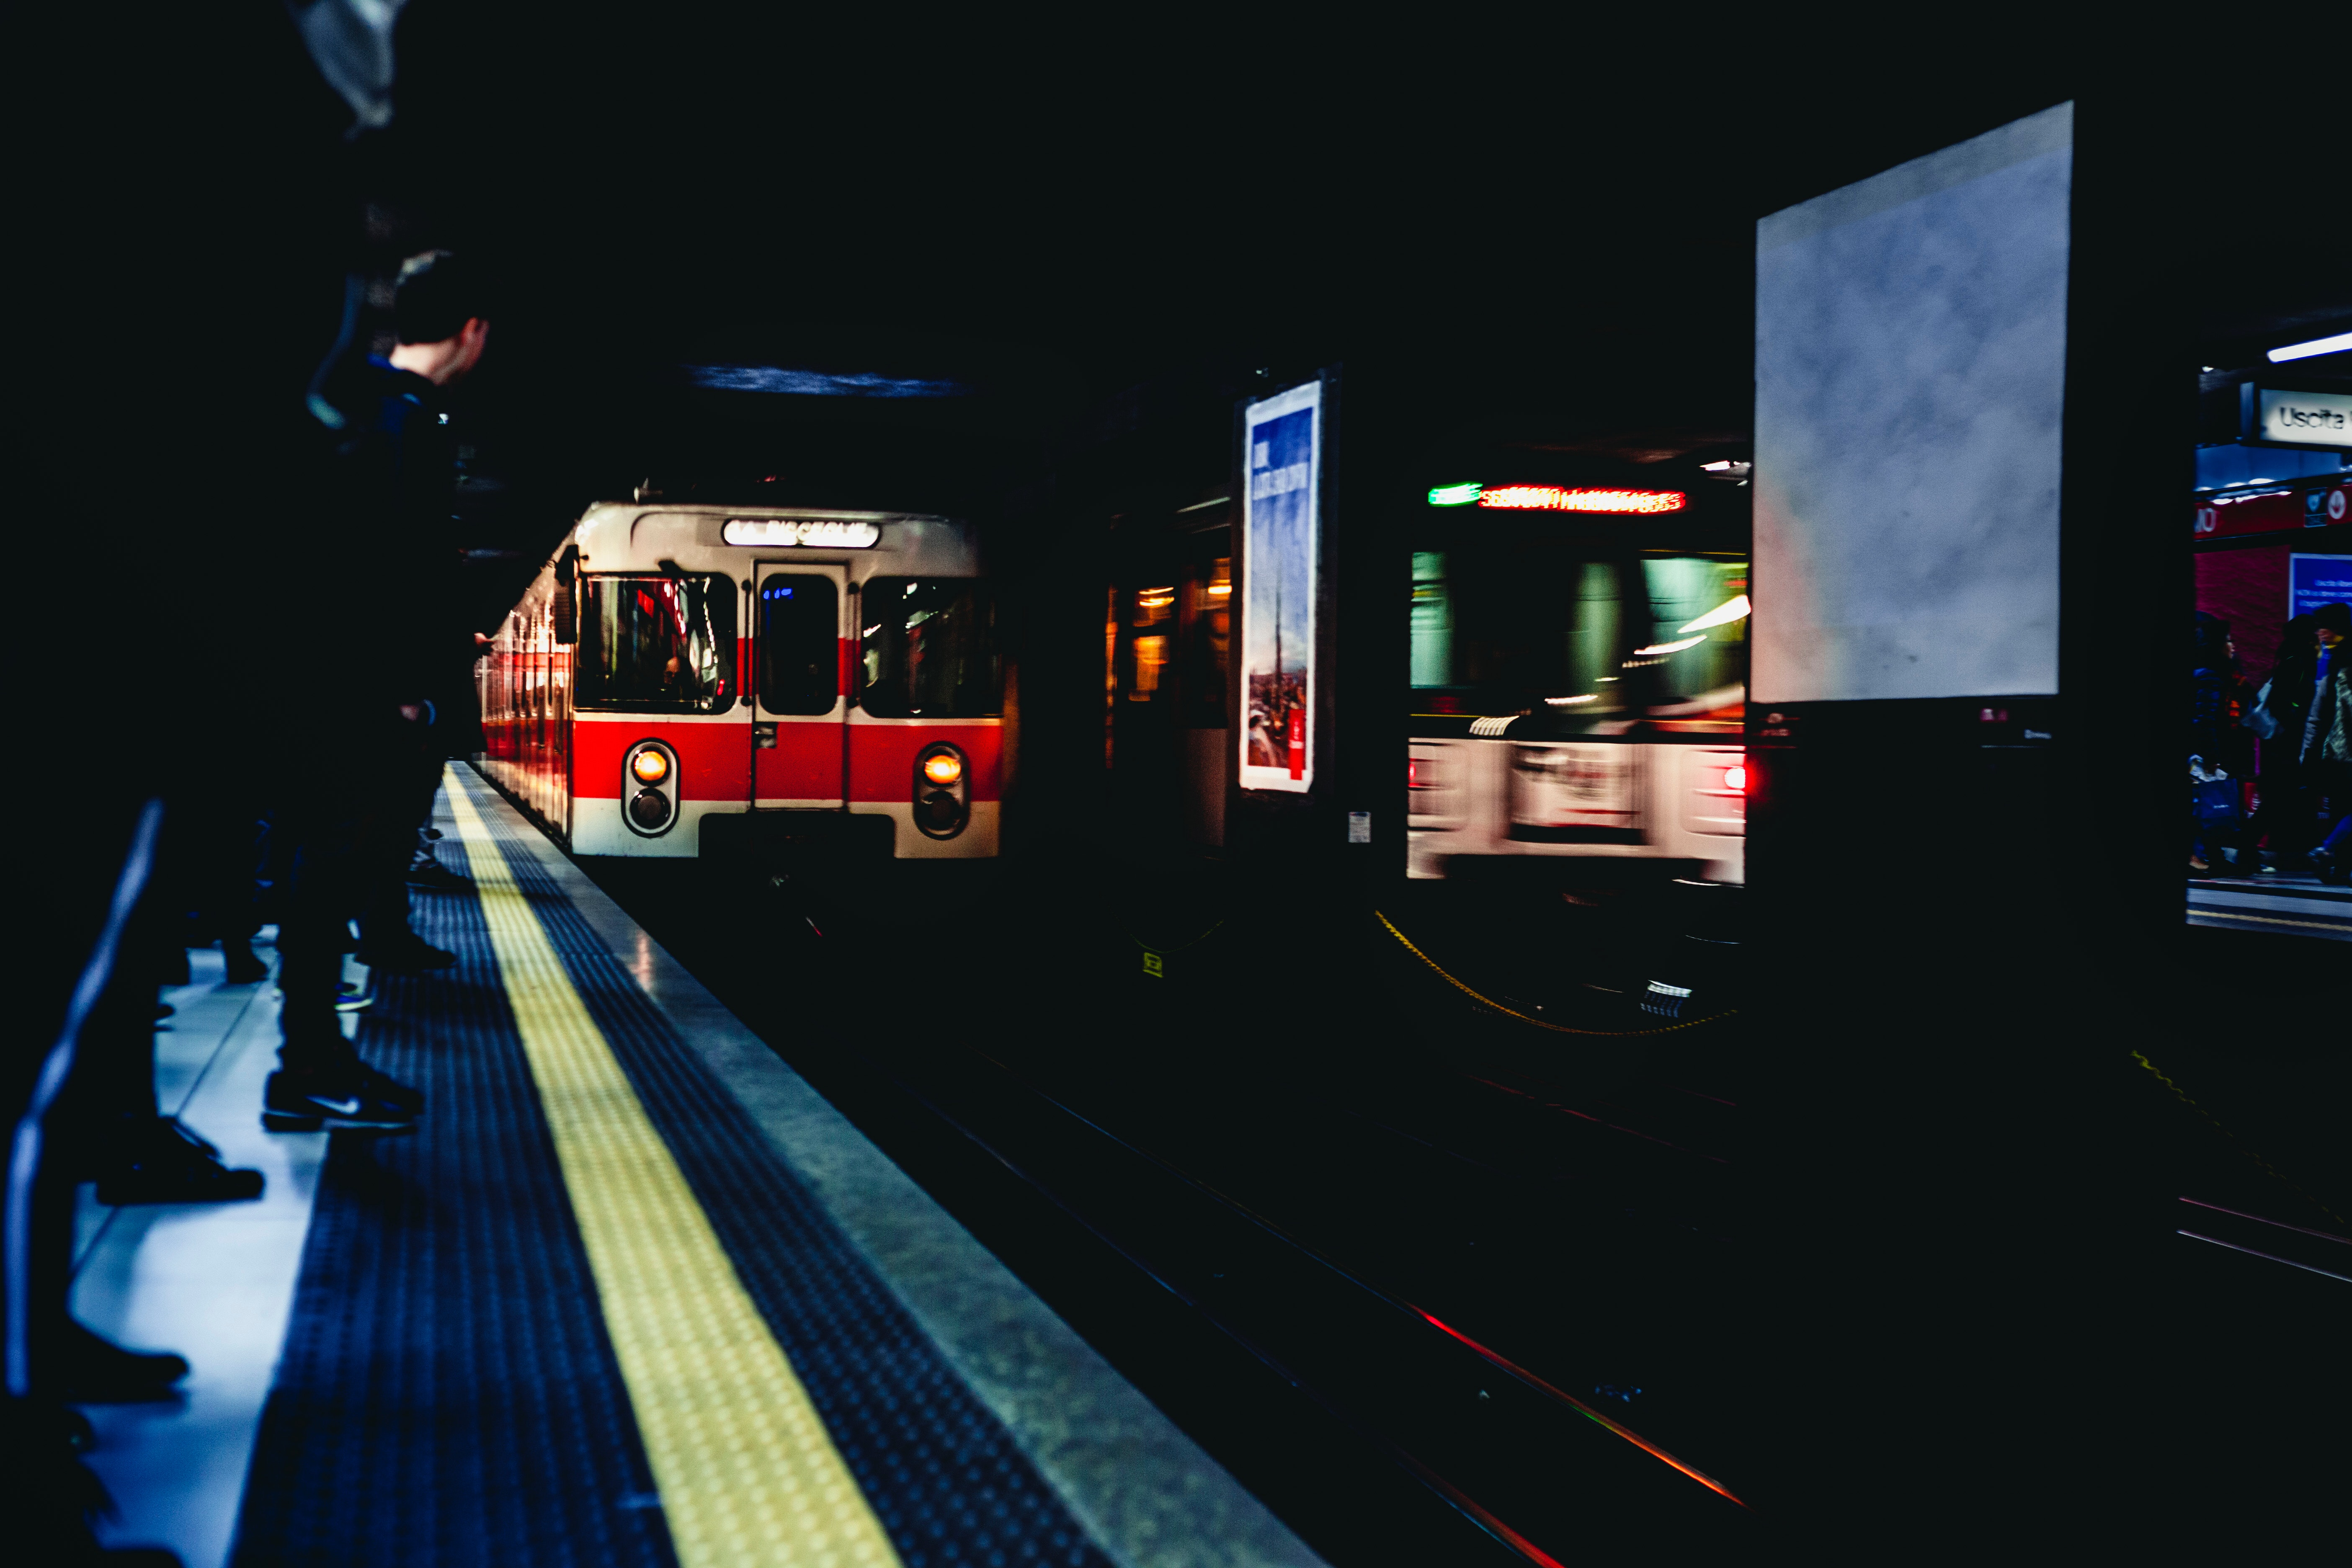 White and red train in underground photo